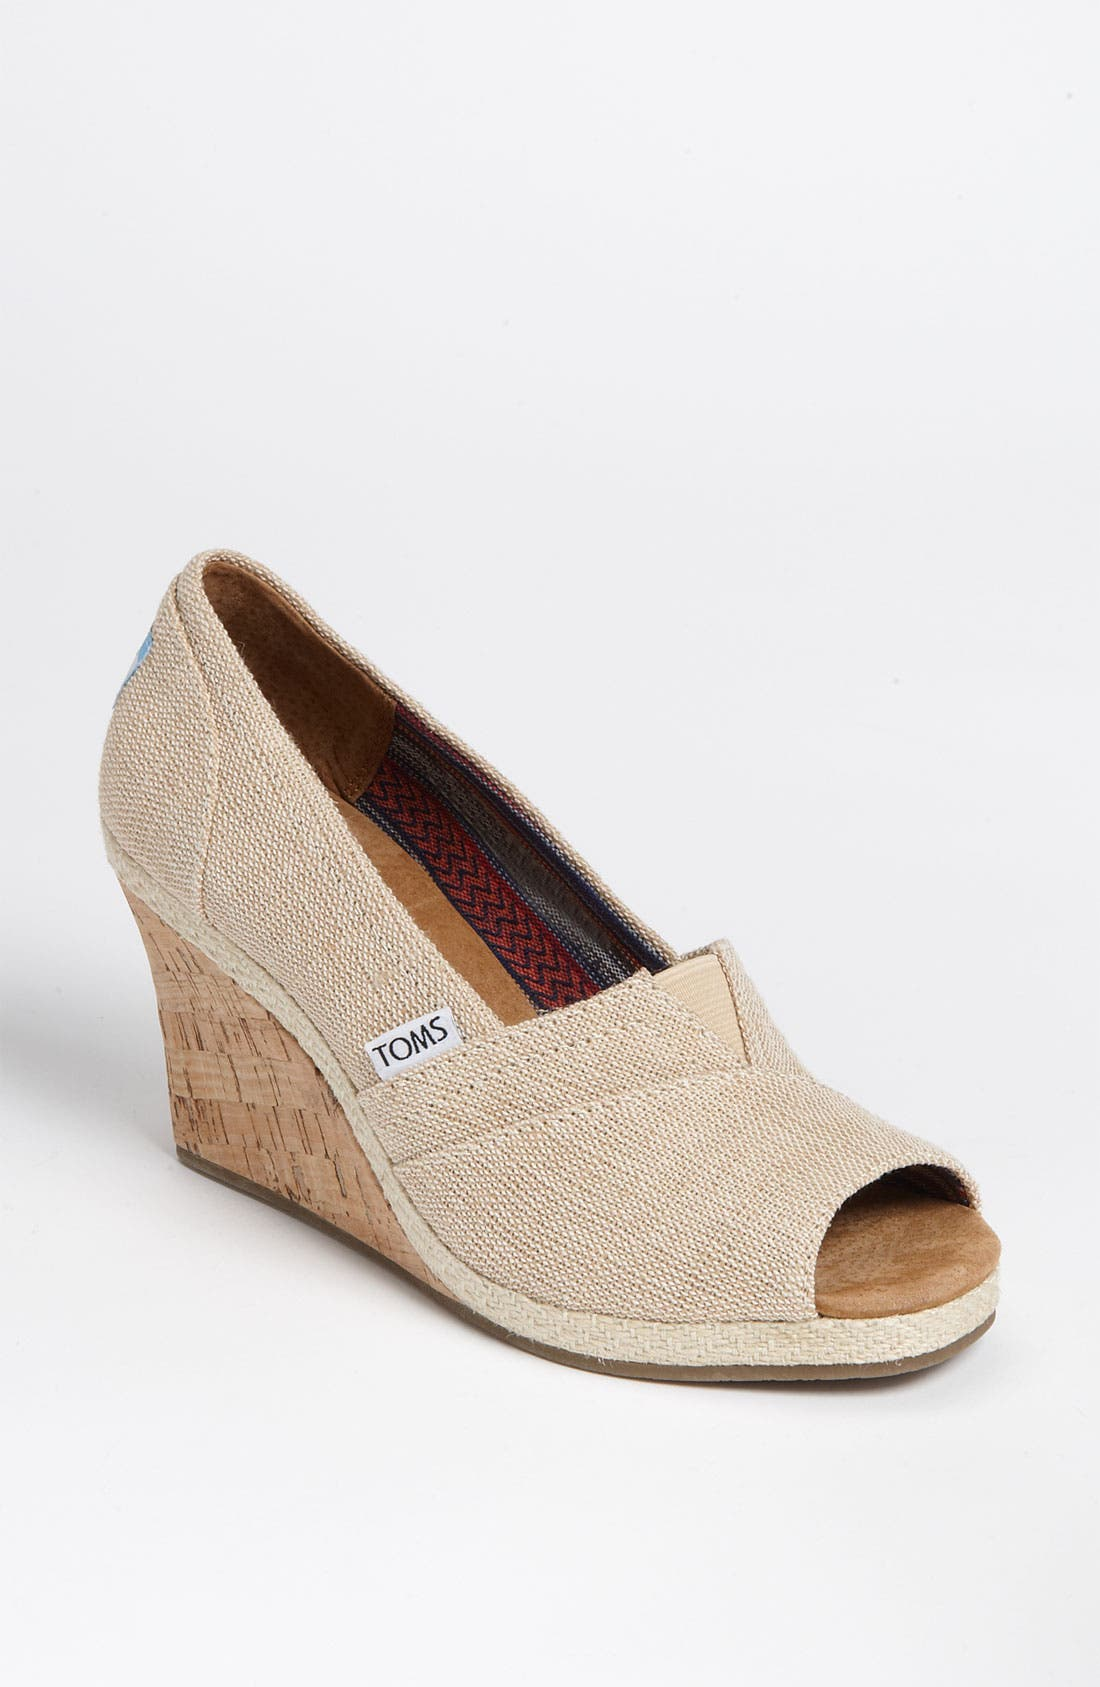 Alternate Image 1 Selected - TOMS 'Amery' Wedge